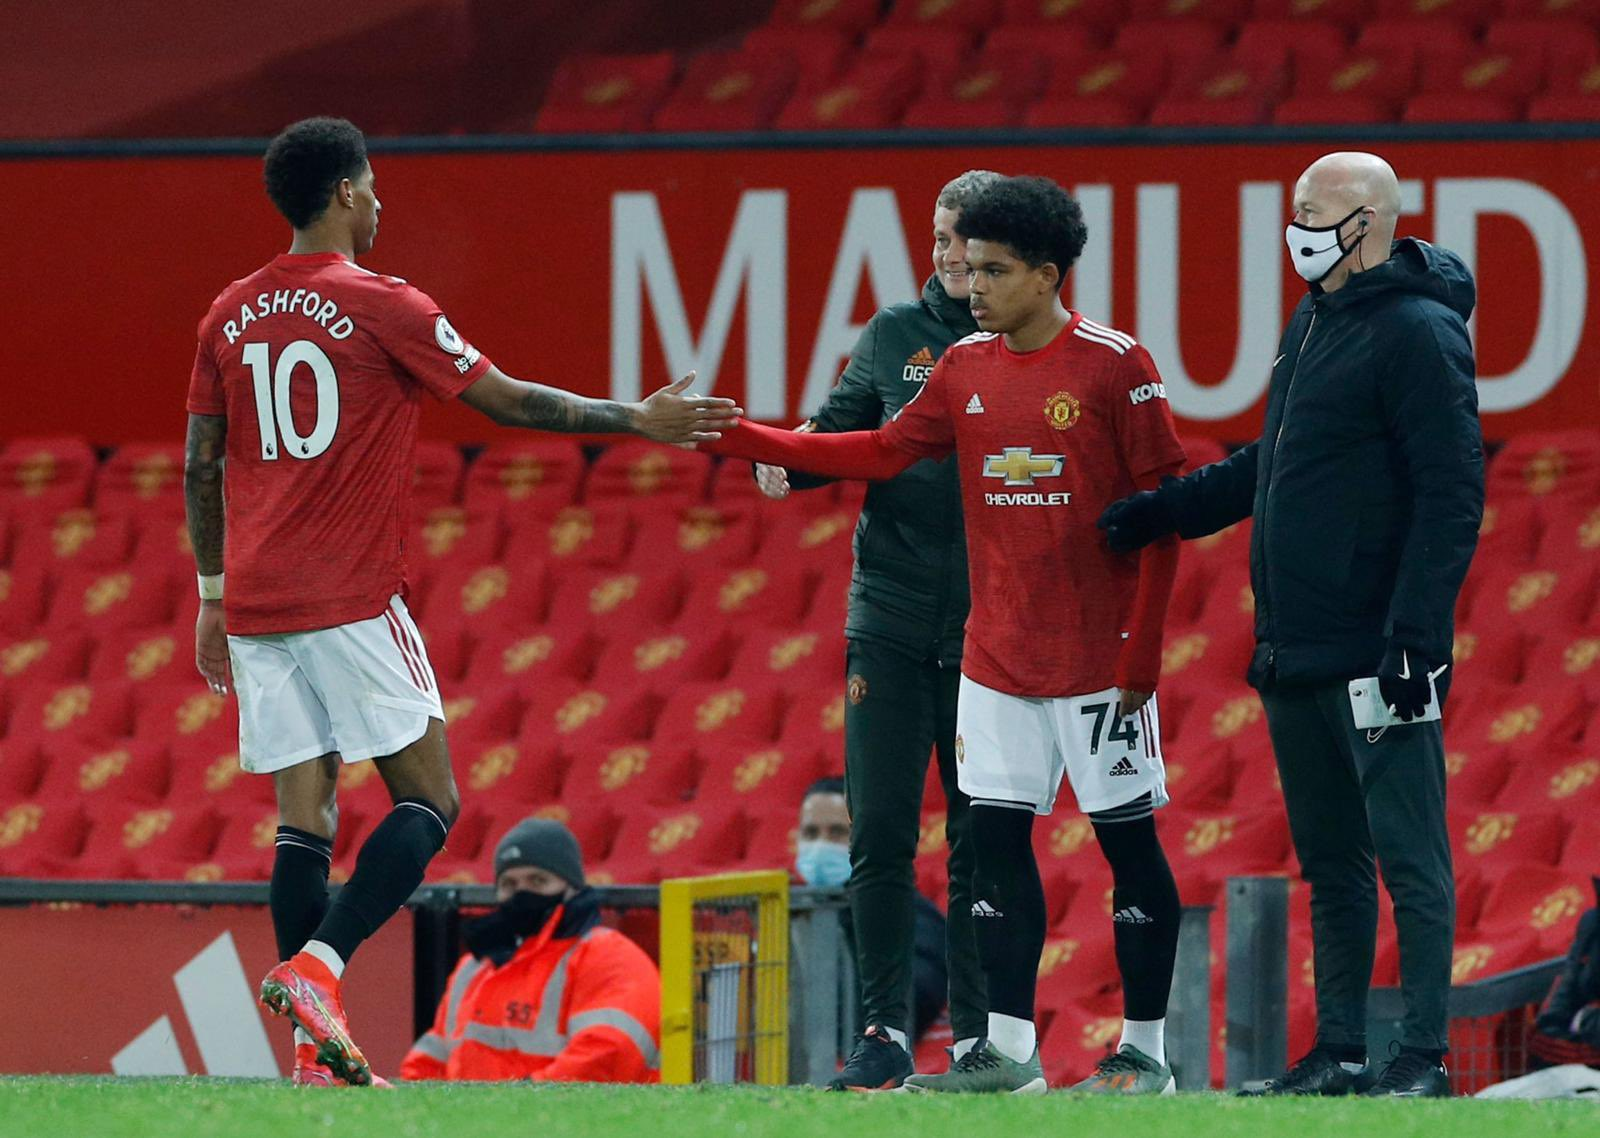 Berbatov: How Shoretire Can Become A First-Team Regular At Man United